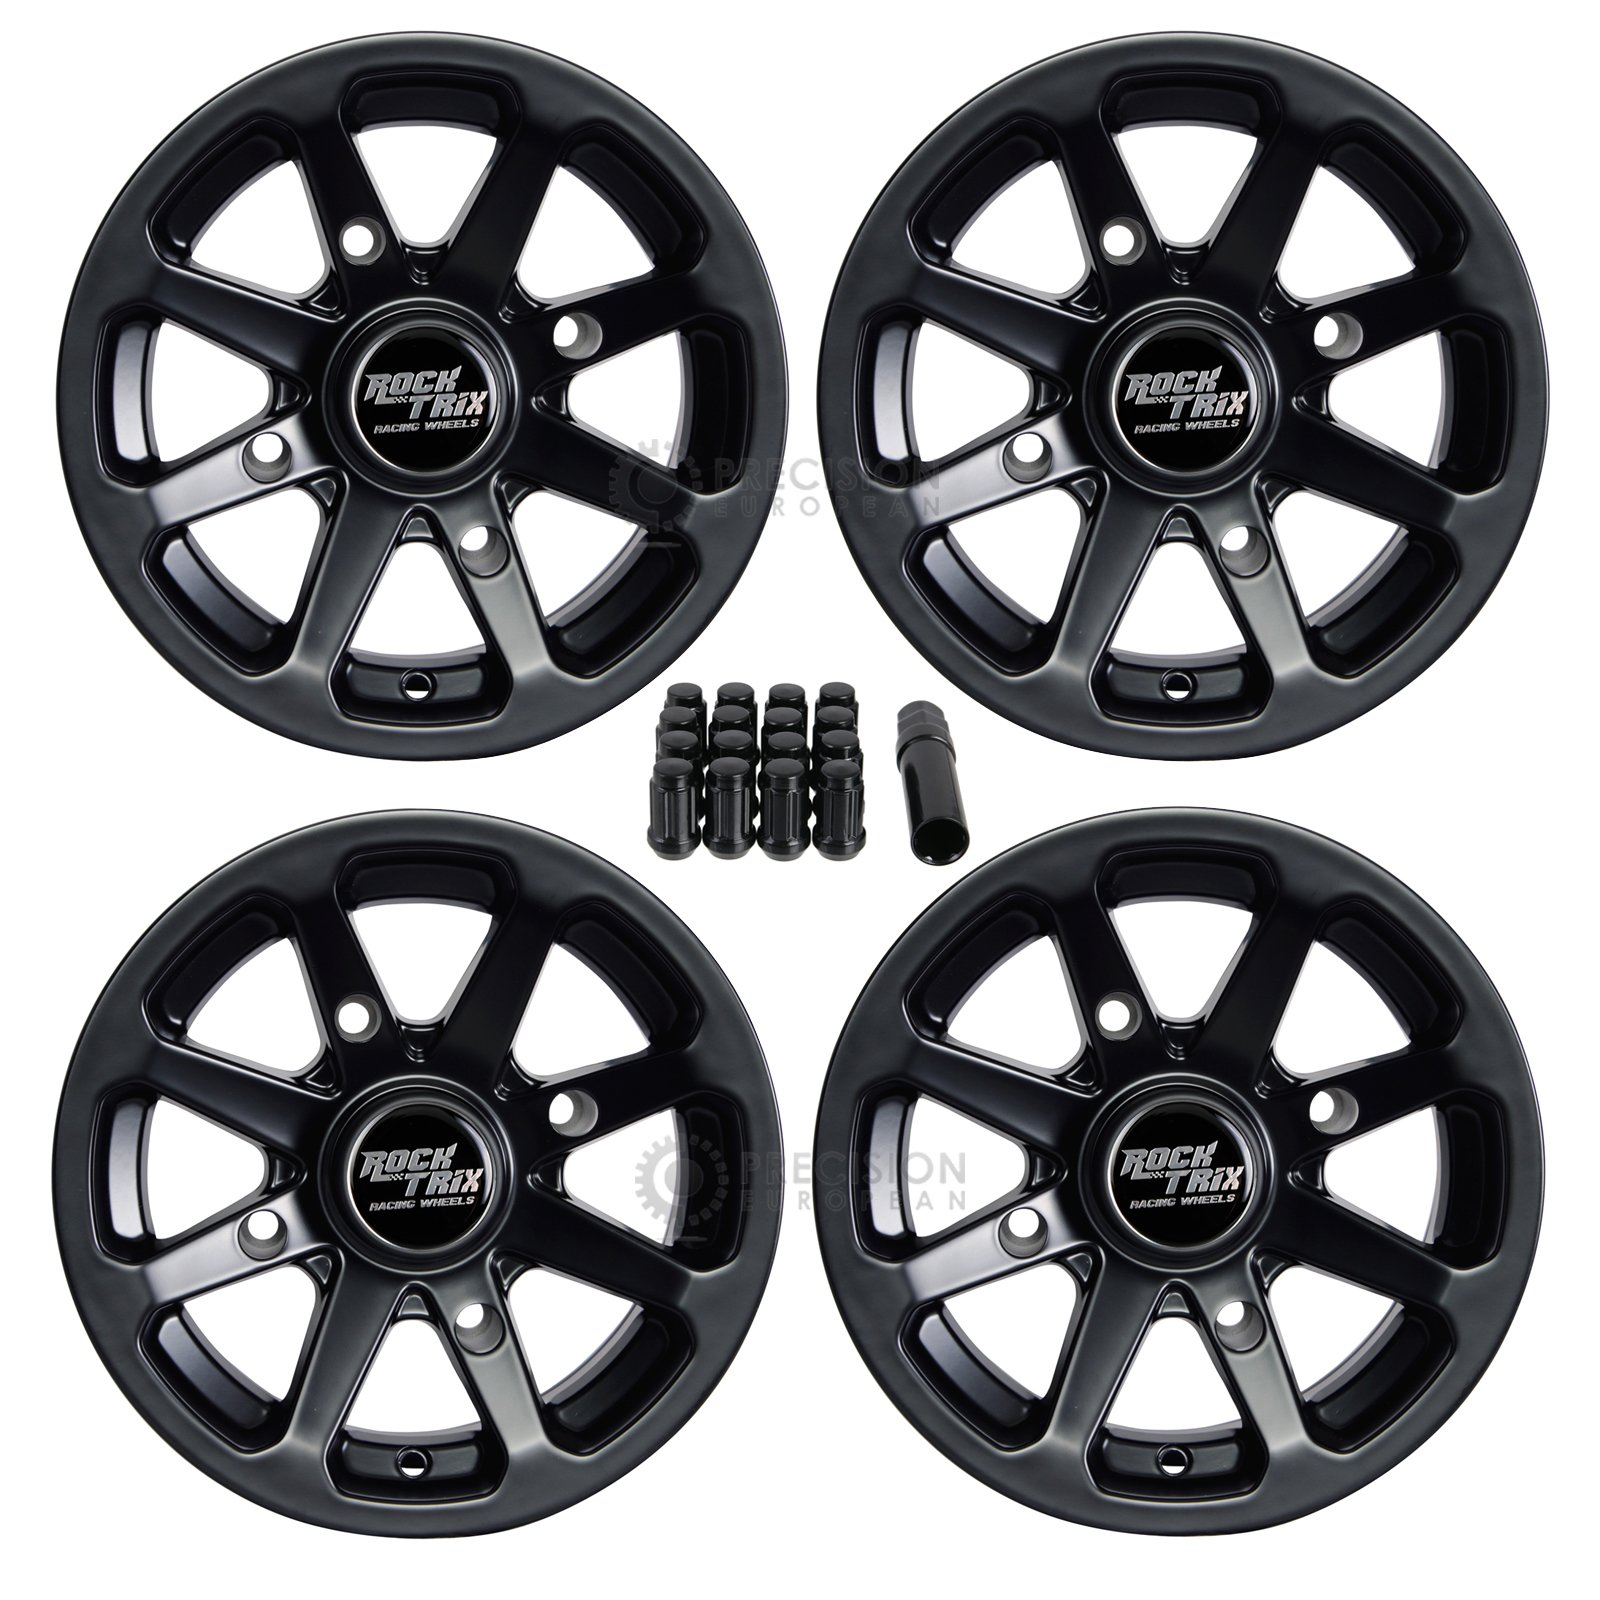 4pc 12'' RockTrix ATV Wheels 12x7 Rims Matte Black | 4x156 Bolt Pattern | 4+3 offset | includes 3/8'' Spline Lug Nuts | for many Polaris Sportsman RZR Ranger (4/156)